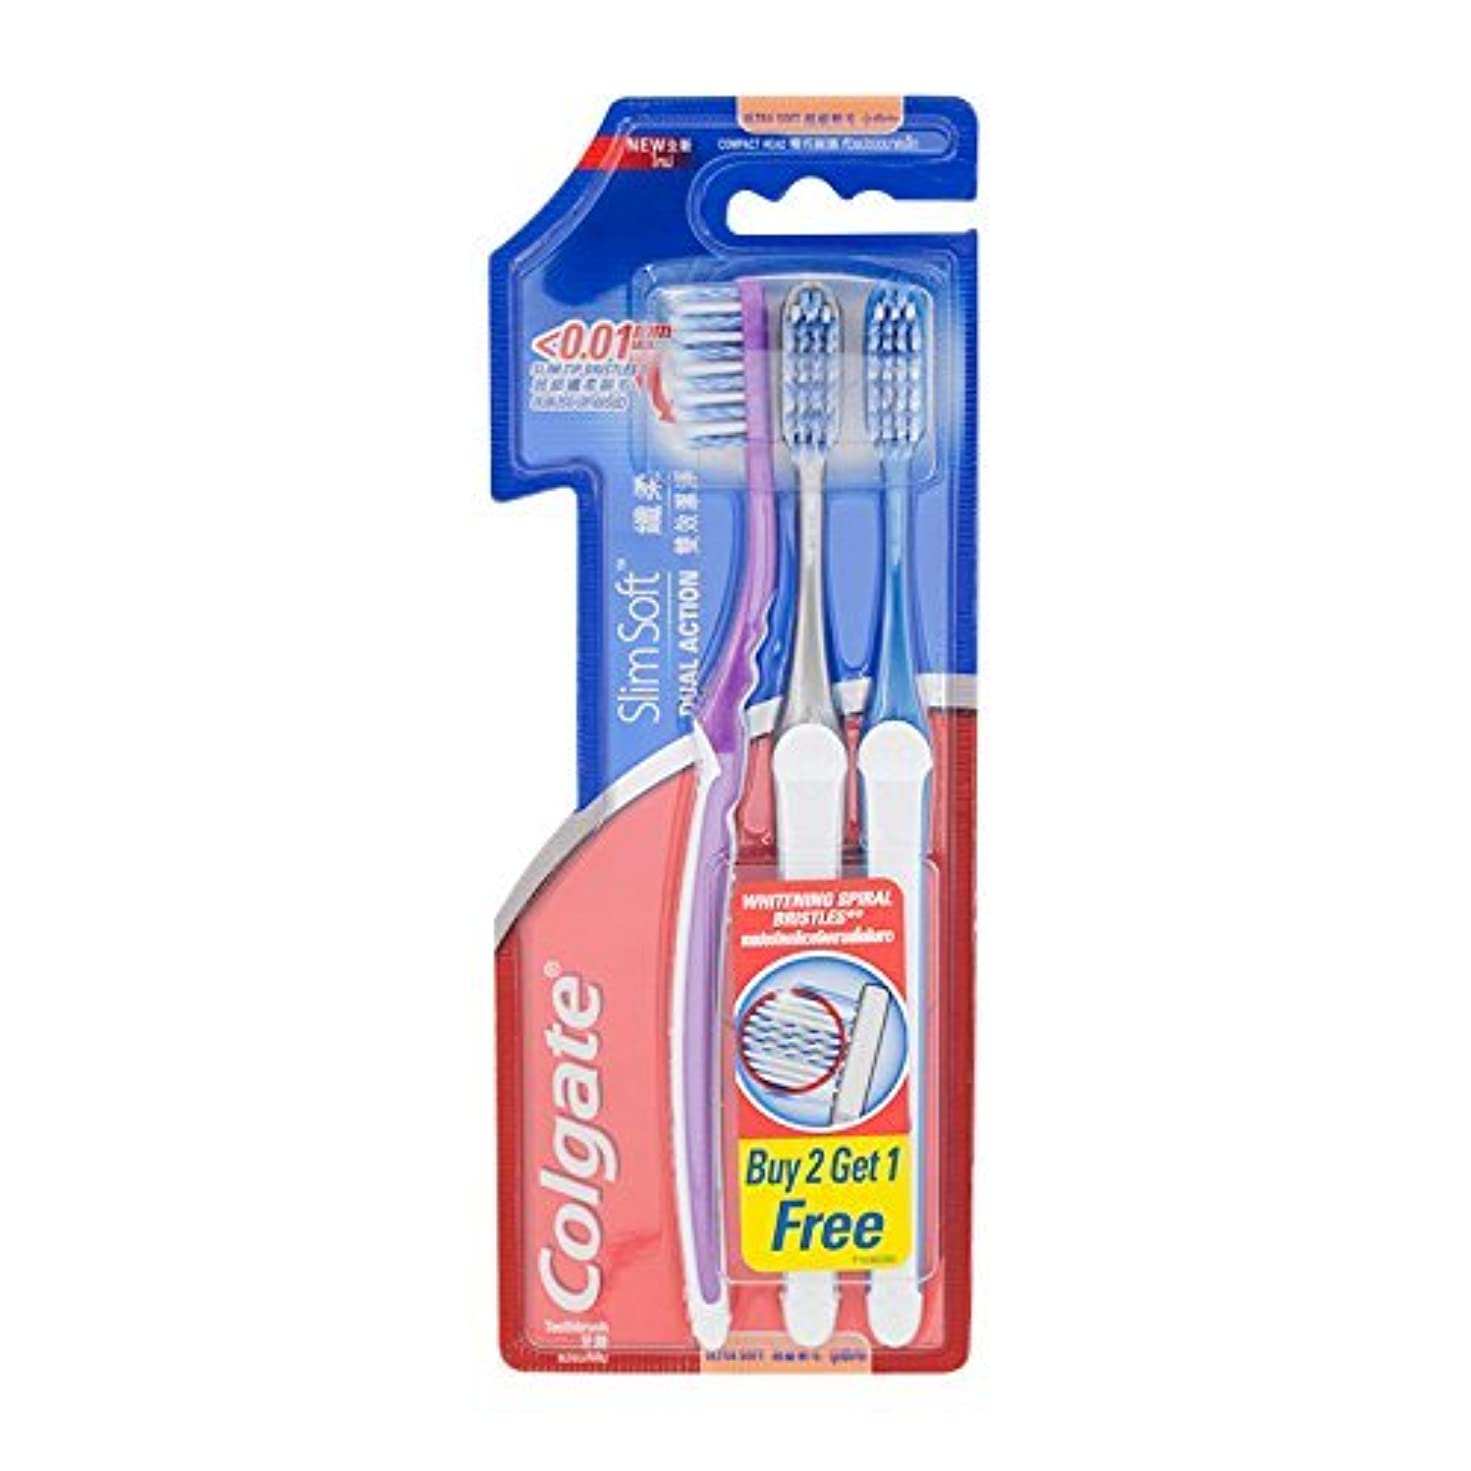 Colgate Compact Ultra Soft Dual Action | Slim Soft Toothbrush, Family Pack (3 Bristles) by BeautyBreeze